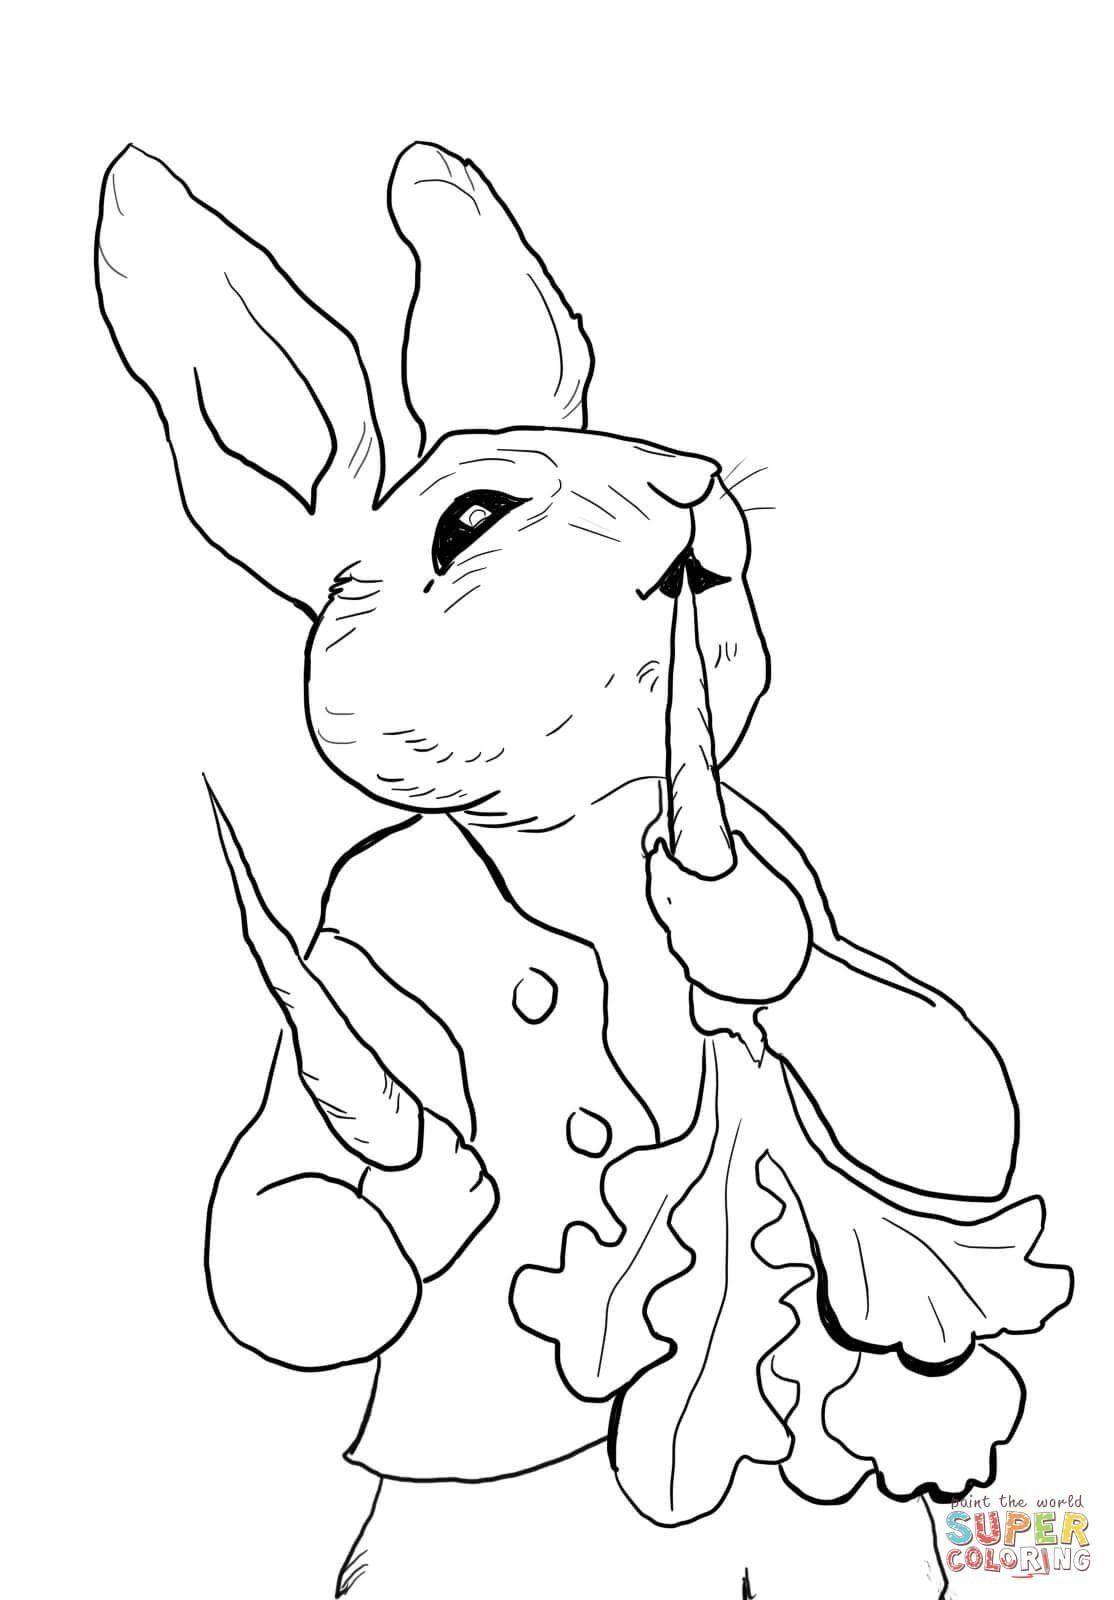 Peter Rabbit Coloring Pages Unique Peter Rabbit Coloring Pages Coloring Pages Patinsudouest Bunny Coloring Pages Peter Rabbit Illustration Rabbit Colors